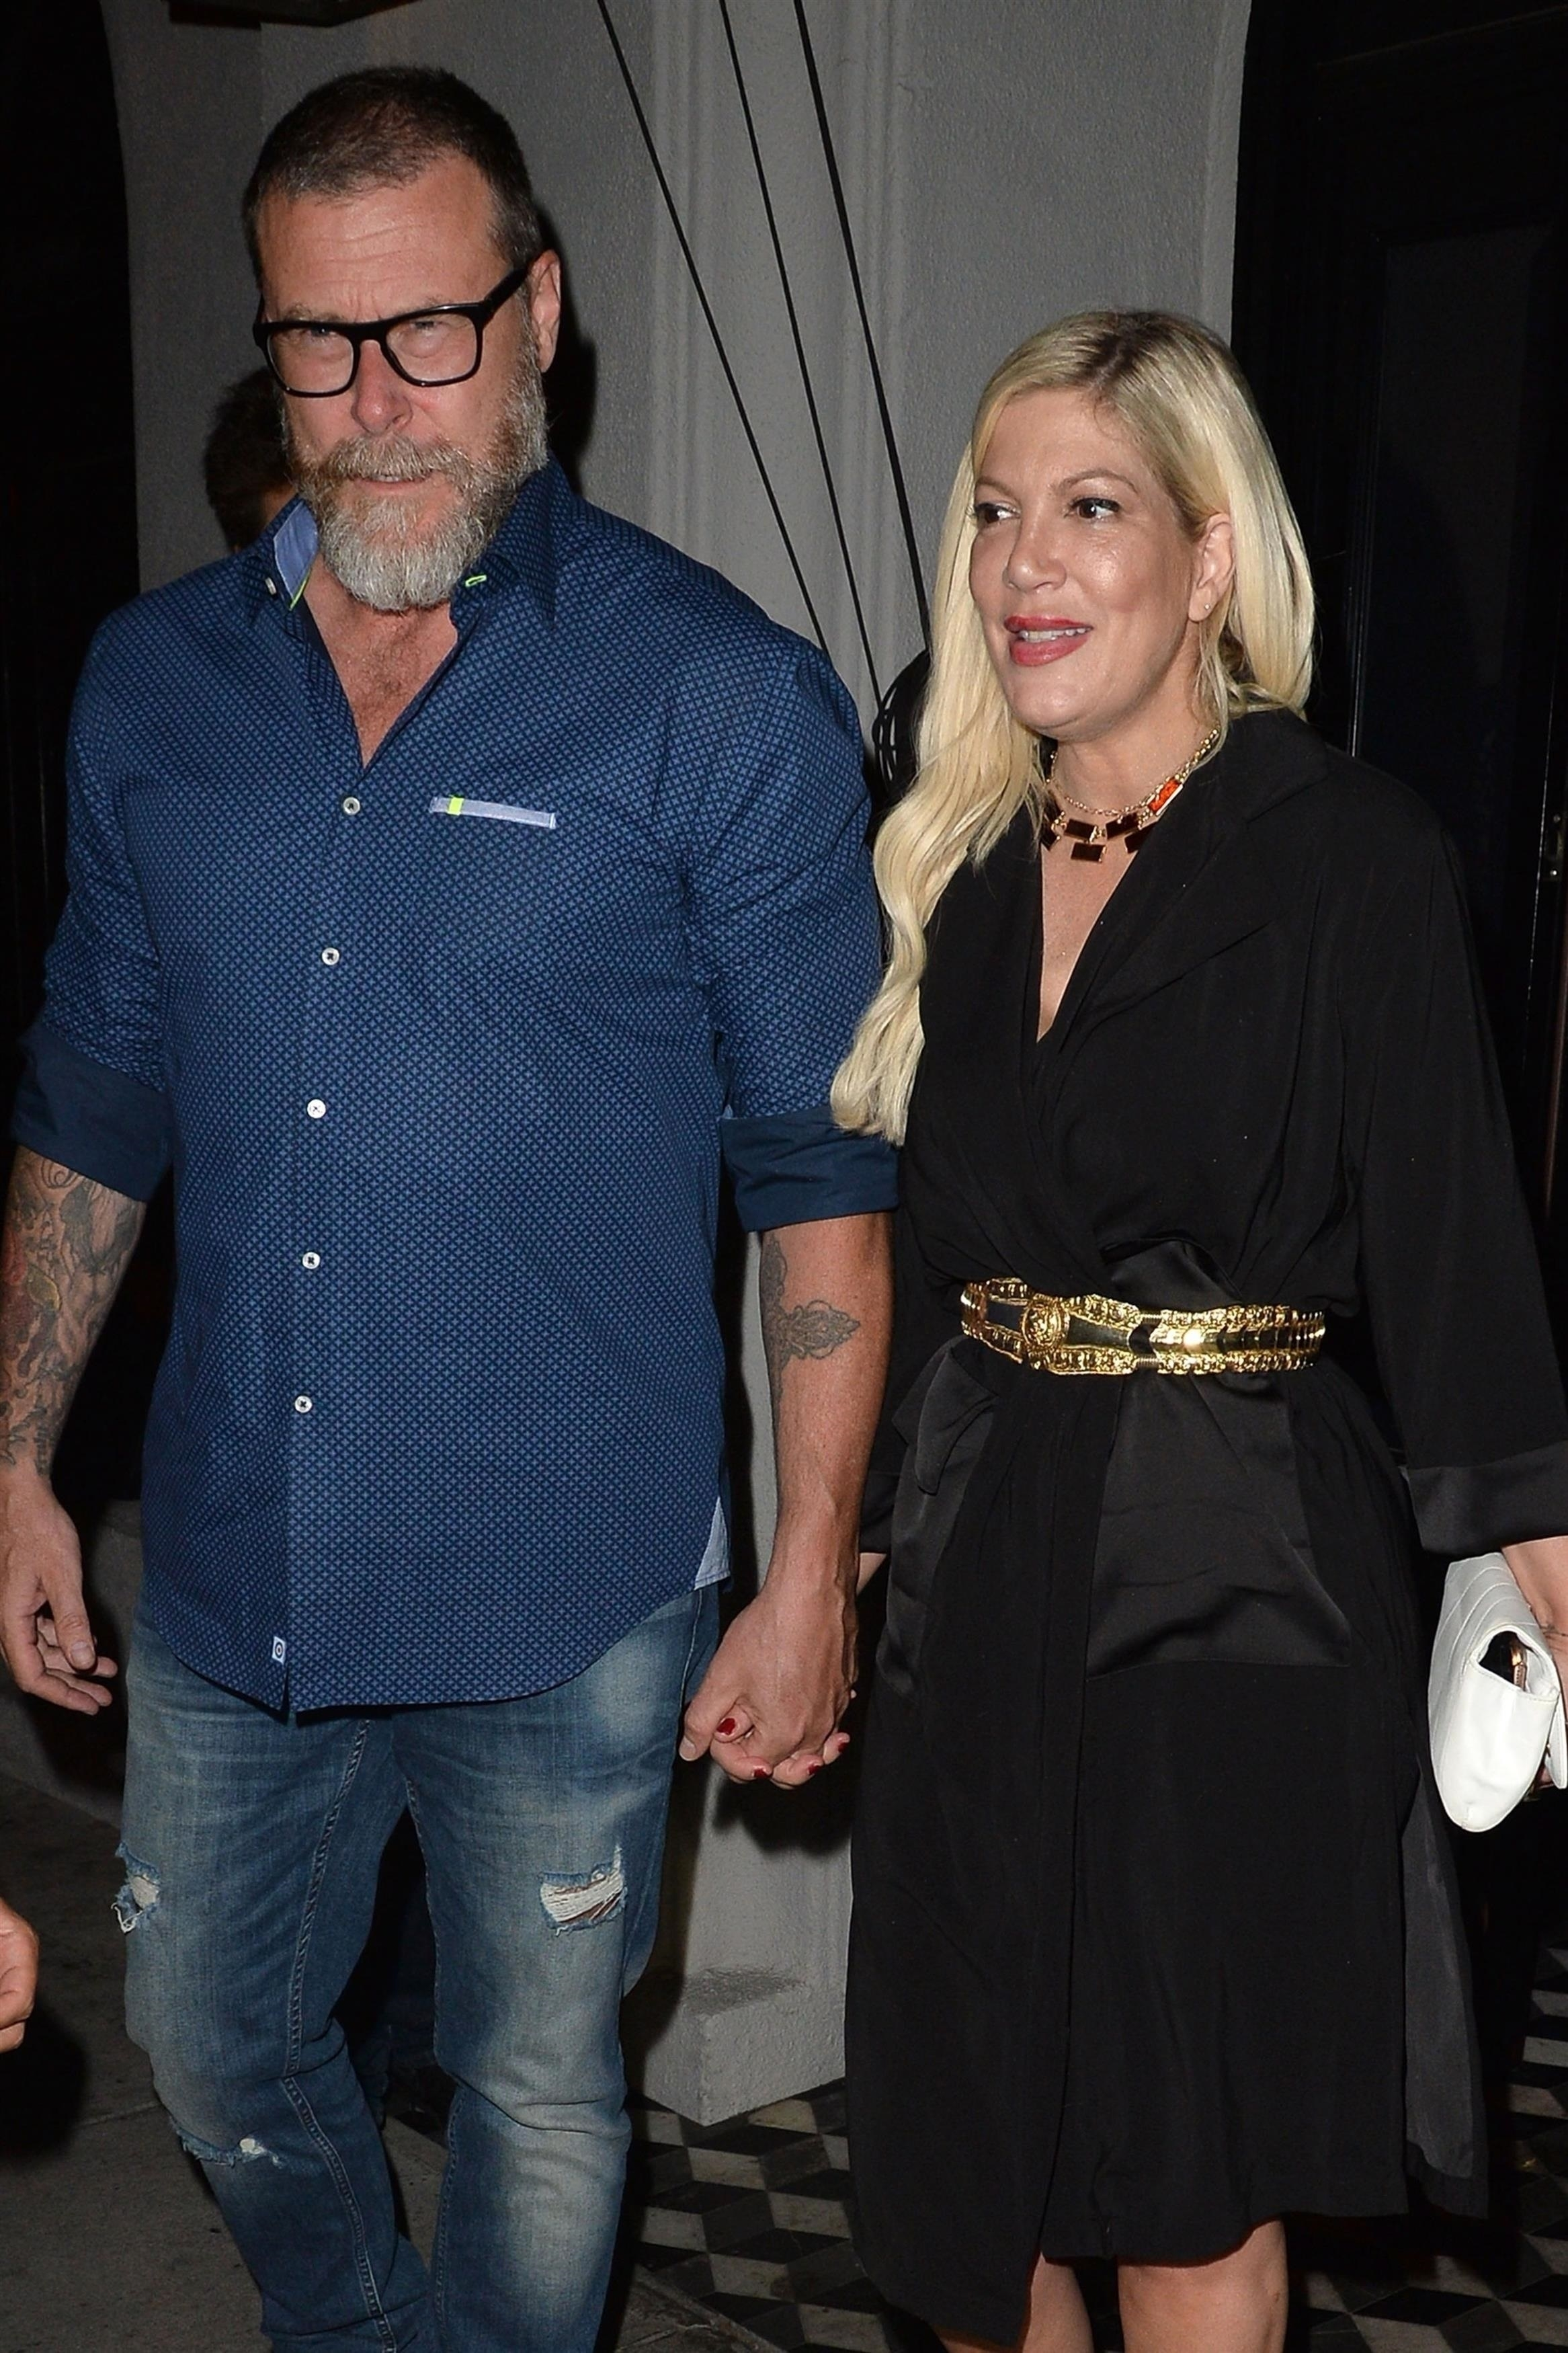 Tori Spelling and Dean McDermott leave after dinner at Craig's in West Hollywood on Aug. 13, 2018.